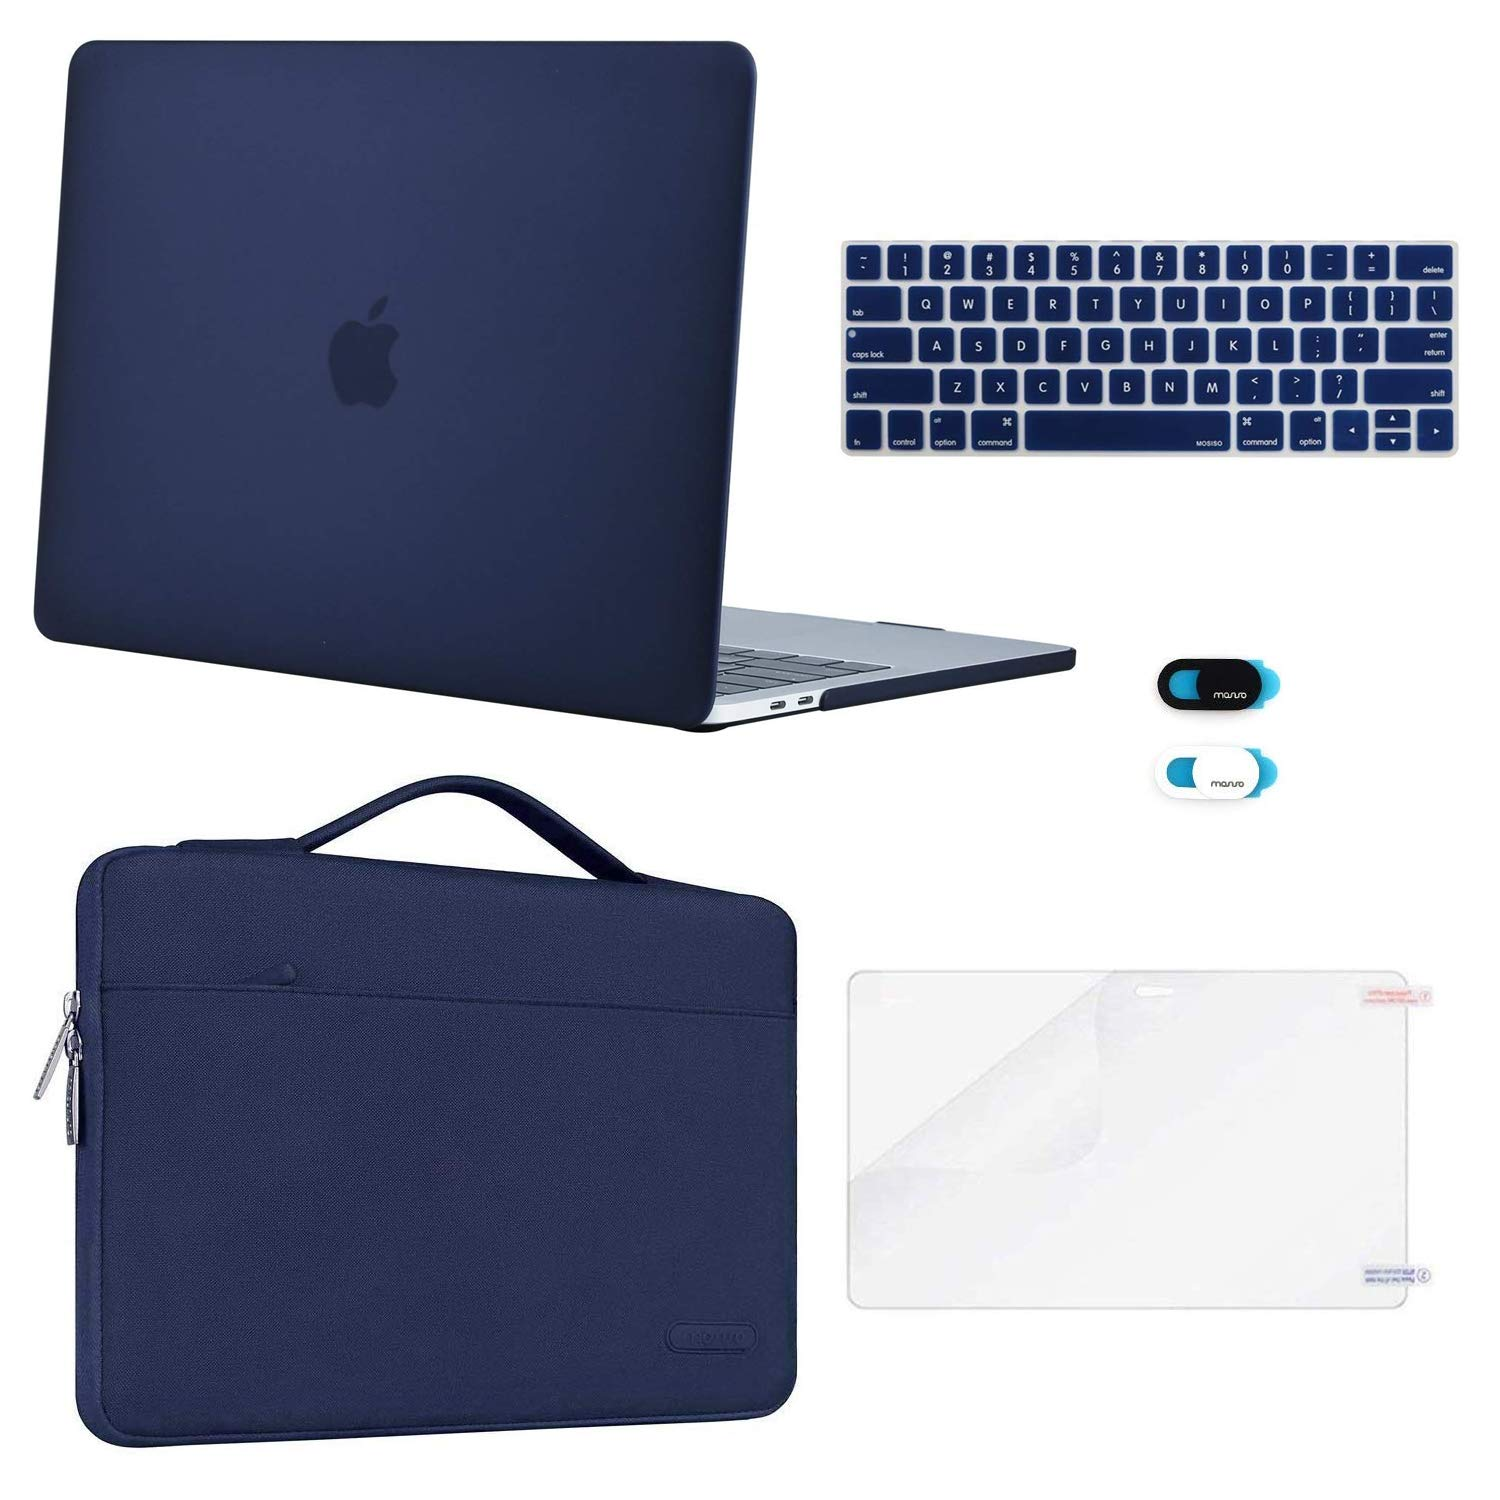 MOSISO MacBook Pro 13 inch Case 2019 2018 2017 2016 Release A2159 A1989 A1706 A1708, Plastic Hard Case&Sleeve Bag&Keyboard Skin&Webcam Cover&Screen Protector Compatible with Mac Pro 13, Navy Blue by MOSISO